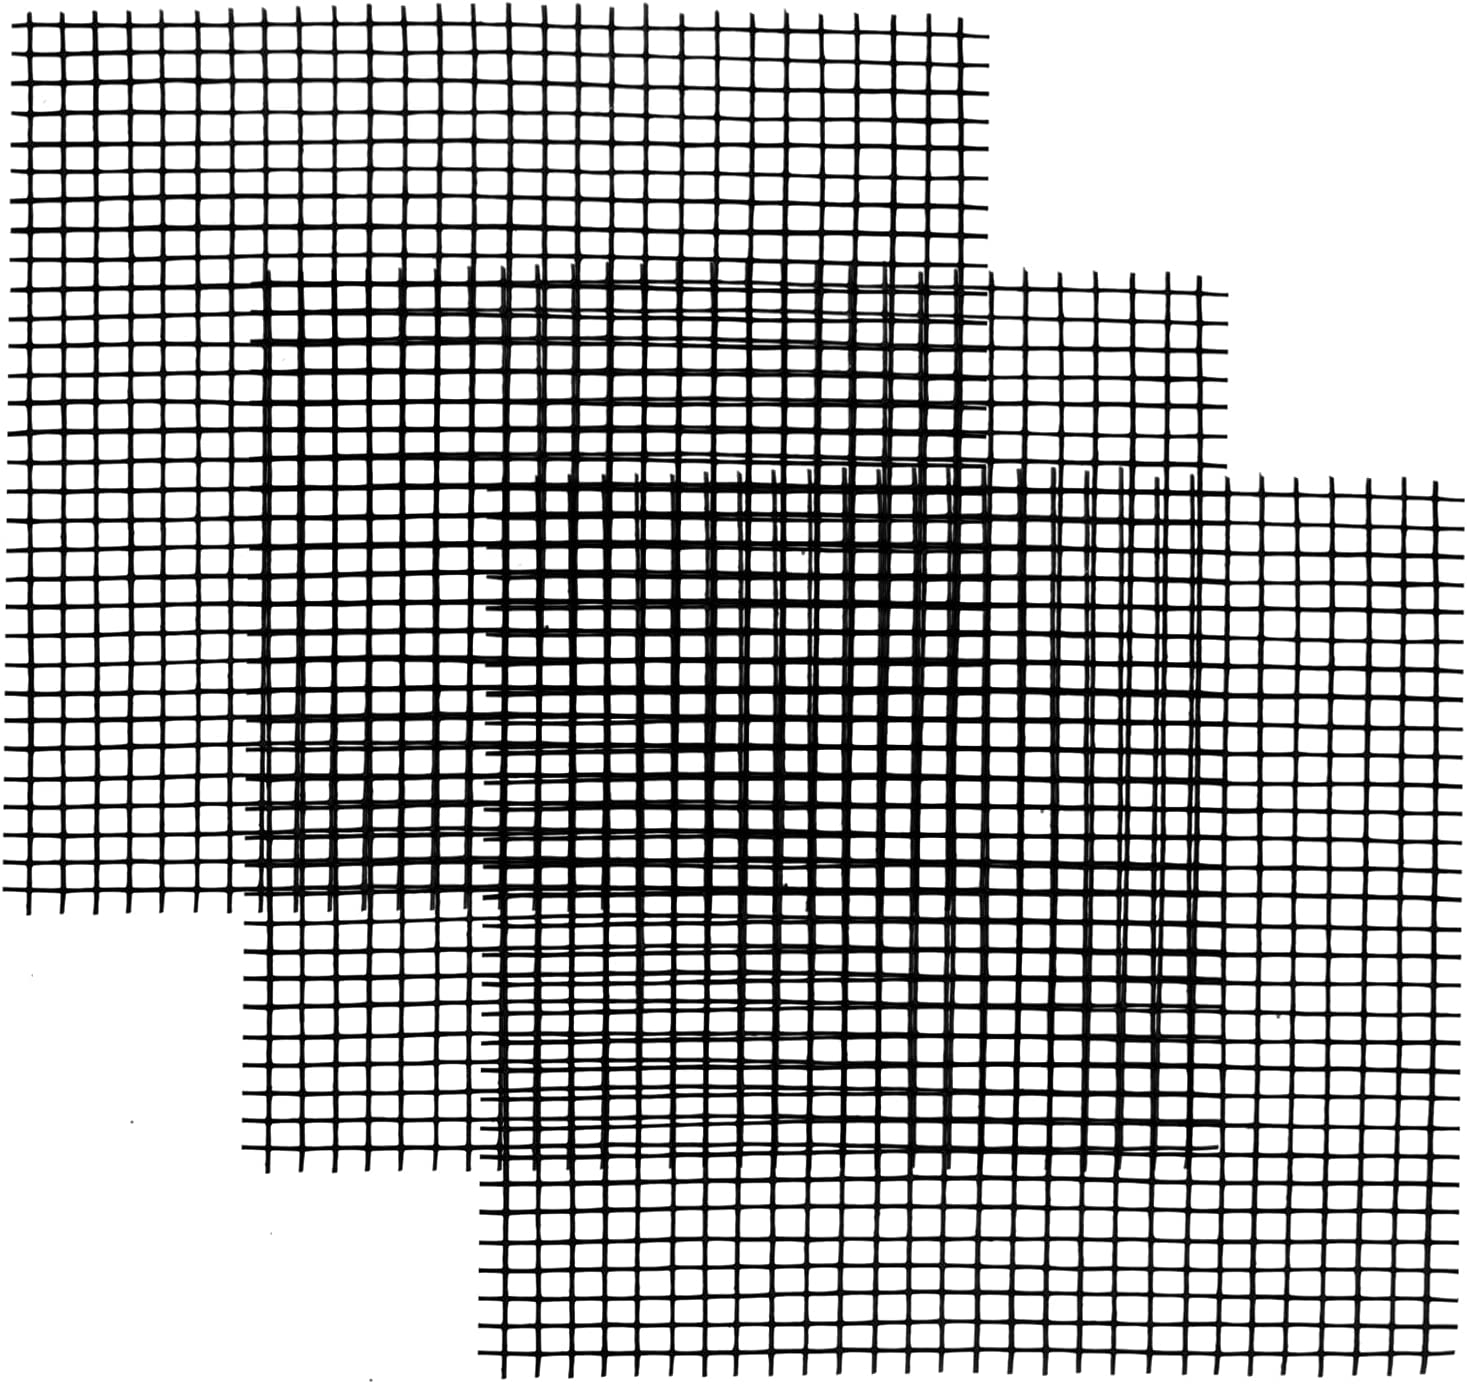 400 Pcs Pot Hole Mesh Pad, 2 Inch Square Planter Flower Pots Hole, Polyamide Drainage Mesh Hole Screens, Mesh Pads for Pots, Drainage Netting Pot Bottom Grid Mat, Keep Soil from Flowing Away (Black)